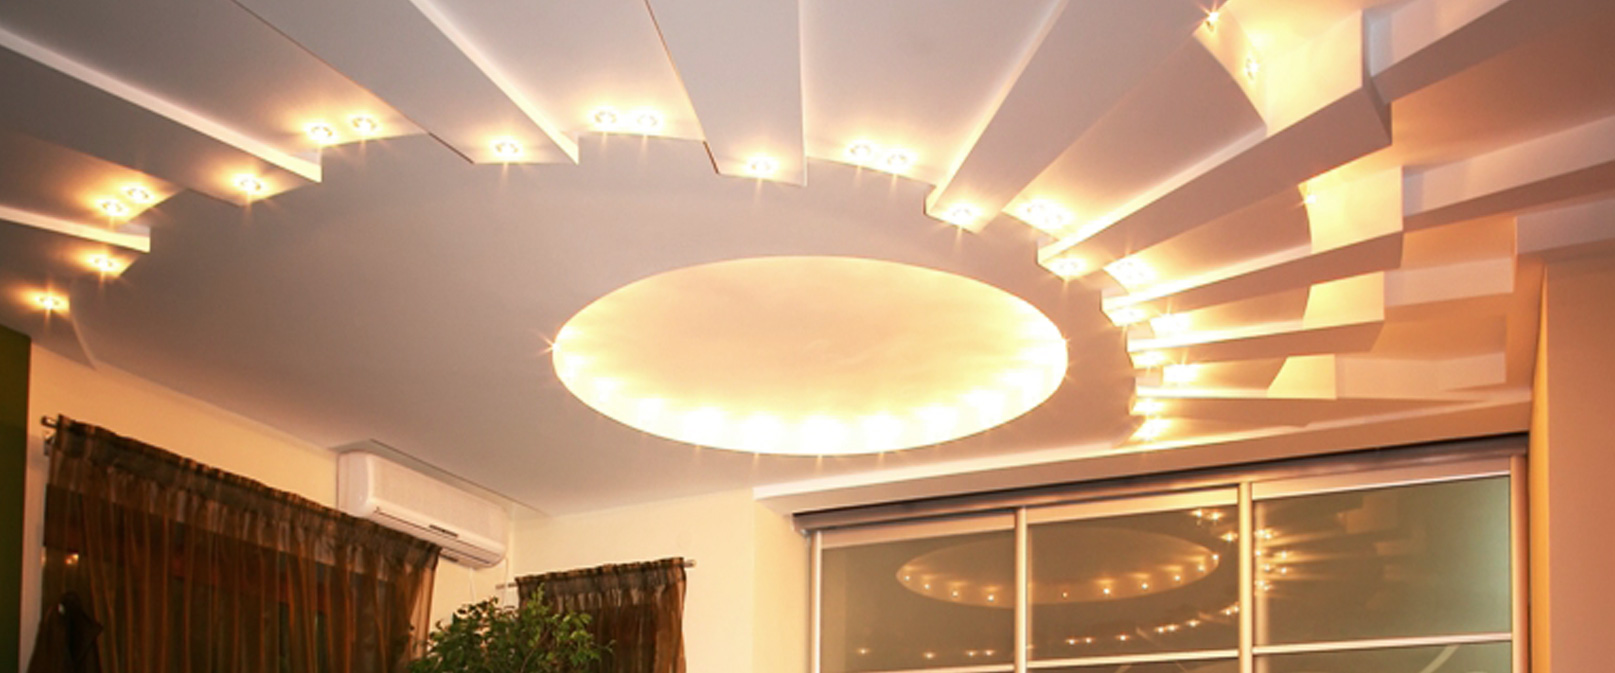 Lighting up the ceiling saint gobain gyproc india aloadofball Image collections